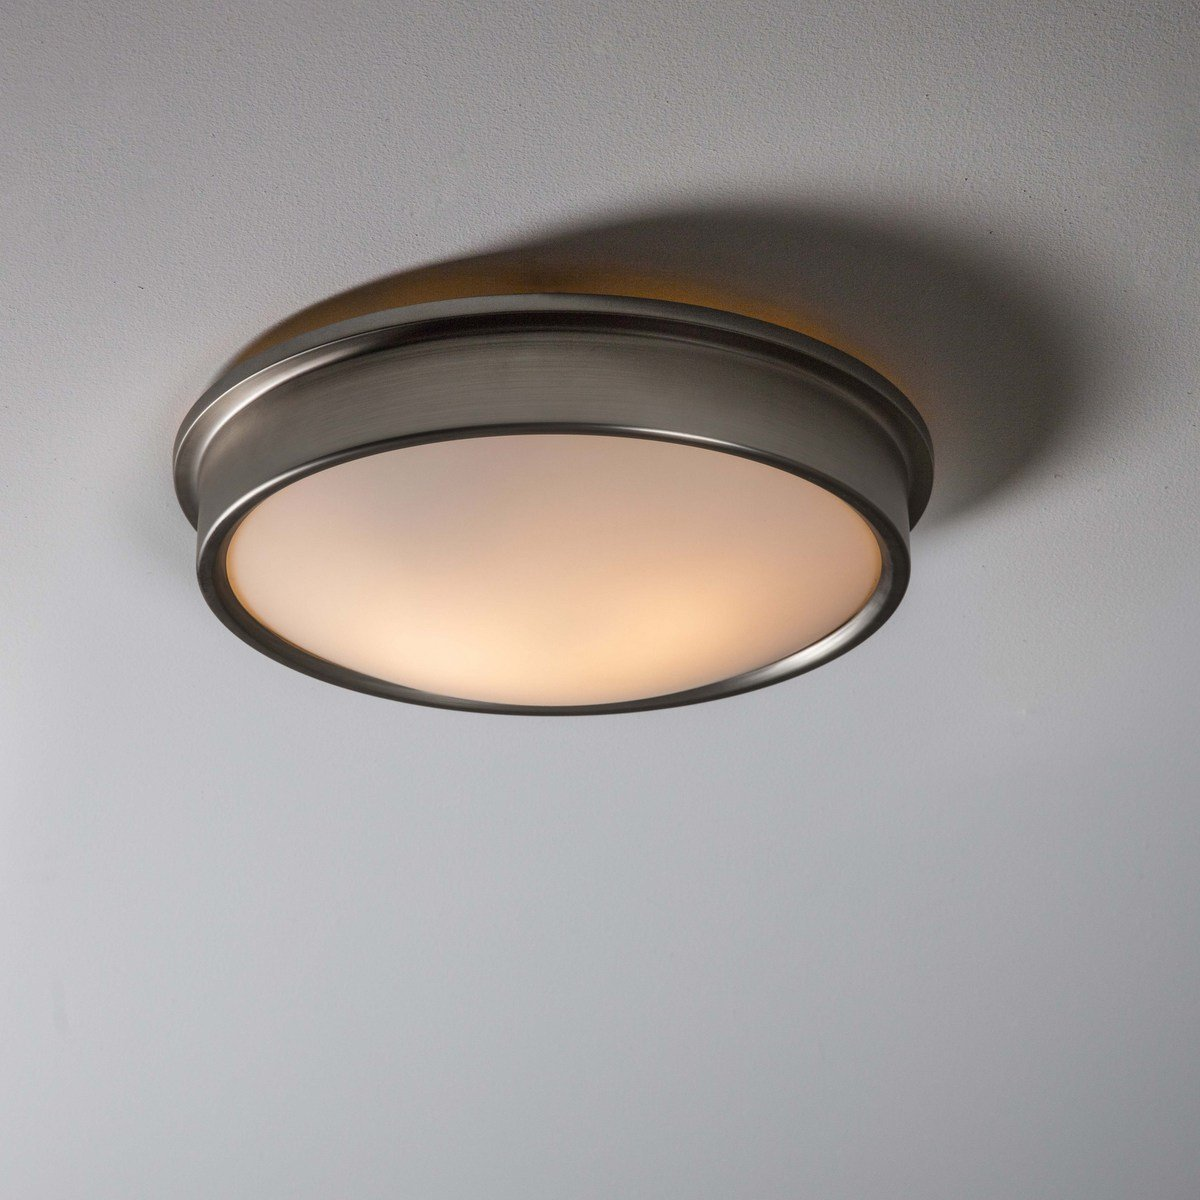 Satin Nickel Bathroom Ceiling Light SAVE 15%